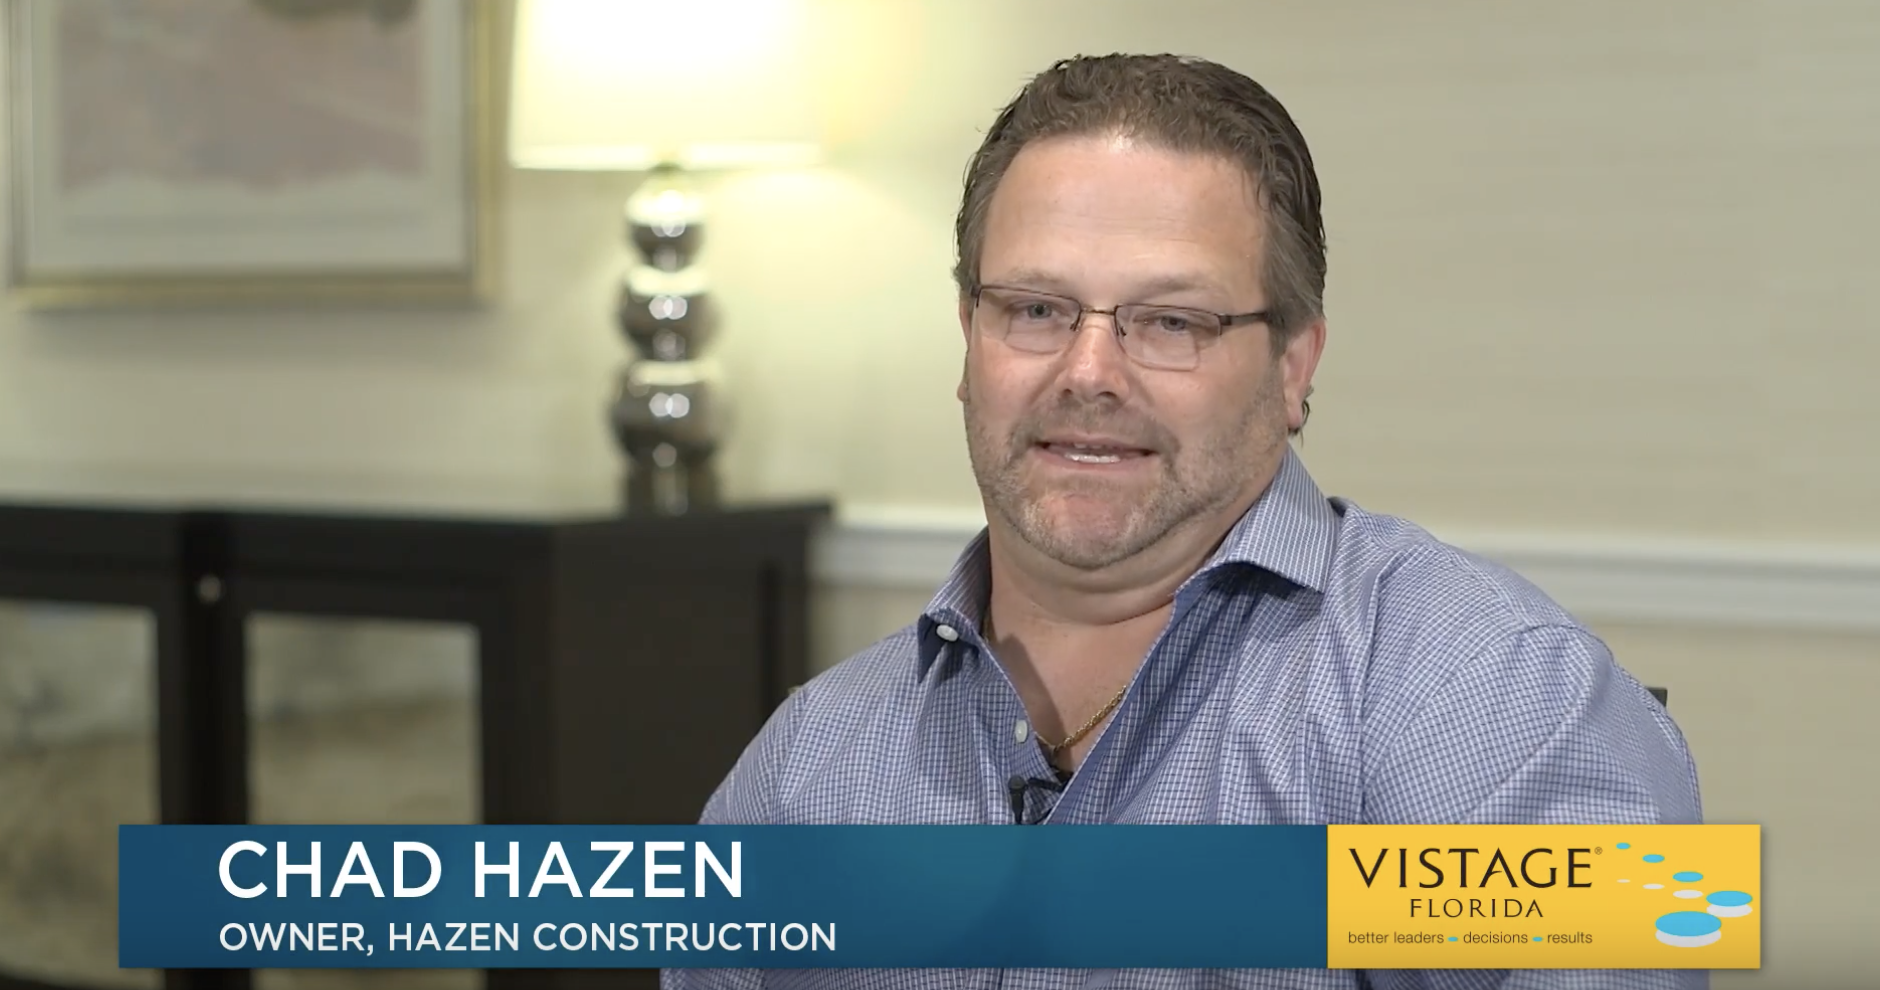 Chad Hazen: Vistage Pays For Itself